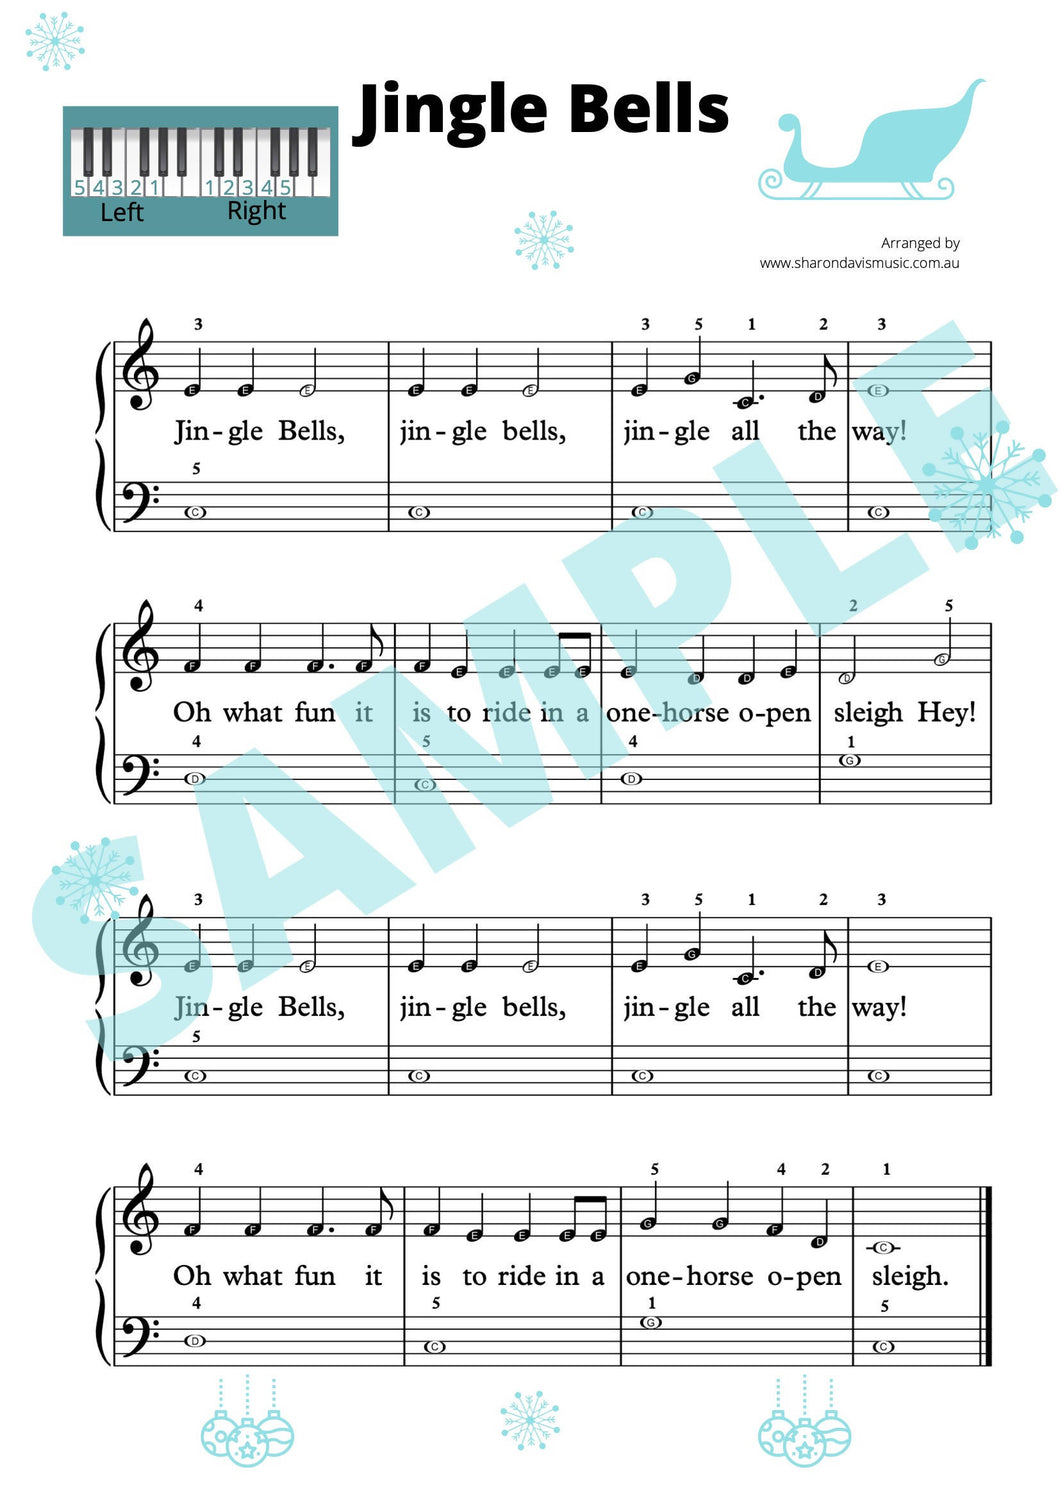 Jingle Bells - beginner level